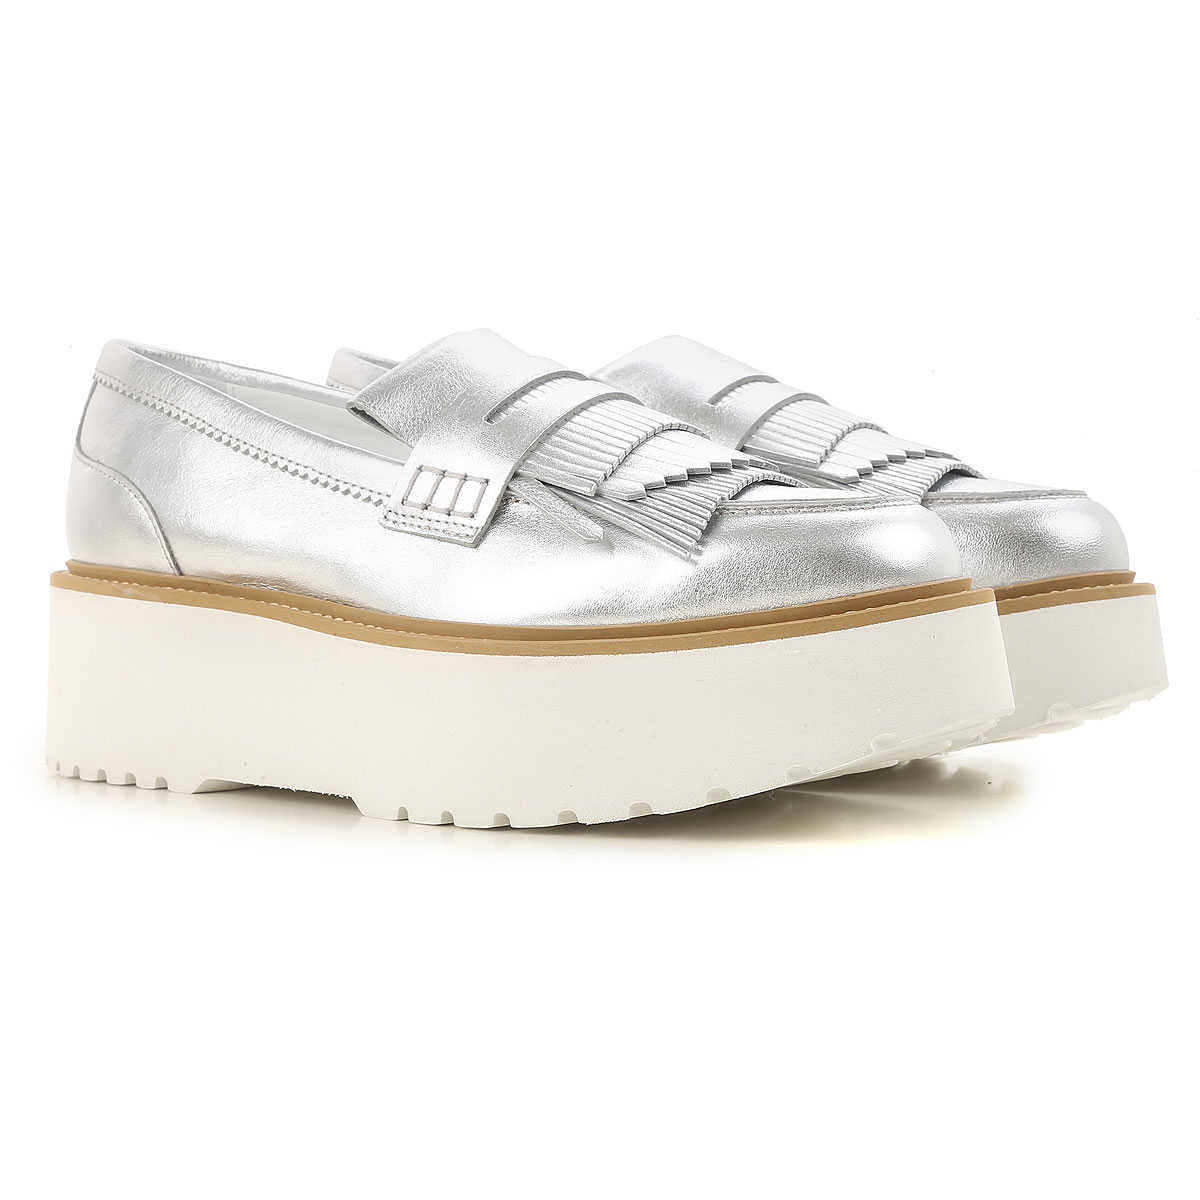 Hogan Loafers for Women On Sale Silver DK - GOOFASH - Womens FLAT SHOES